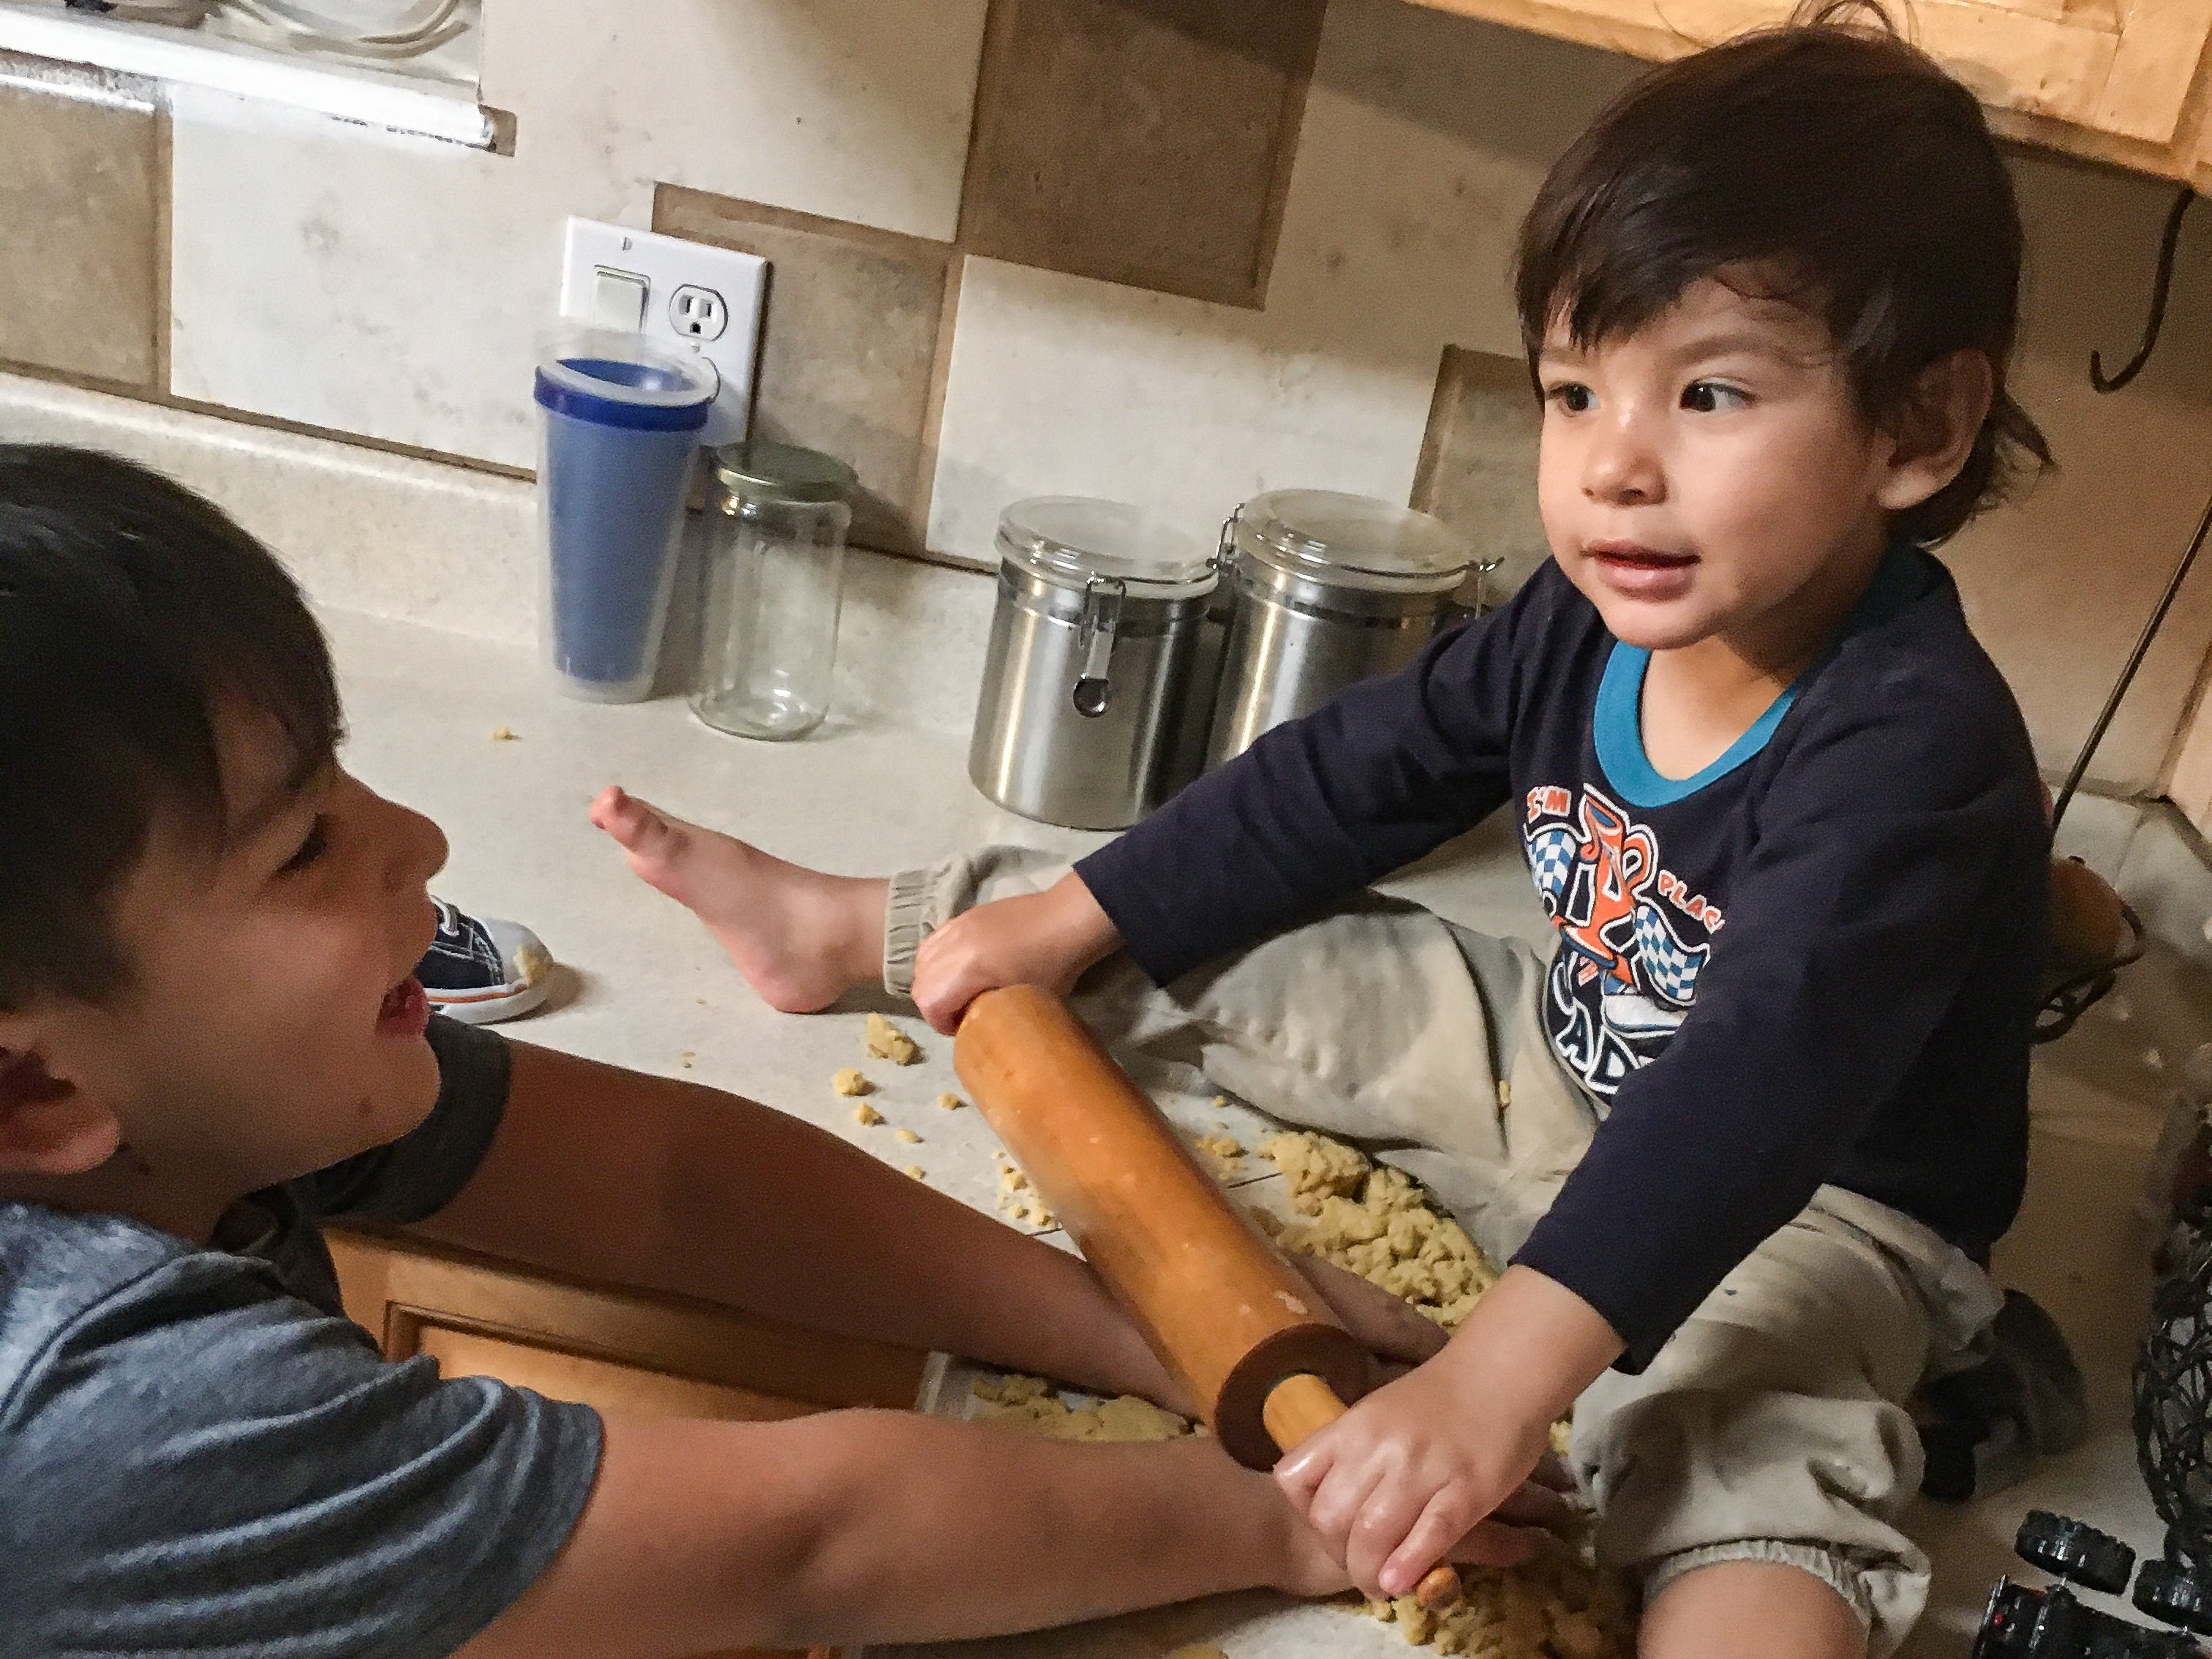 A 2-year-old sits on the counter holding a rolling pin while his 5-year-old brother helps him roll out buñuelos at home.